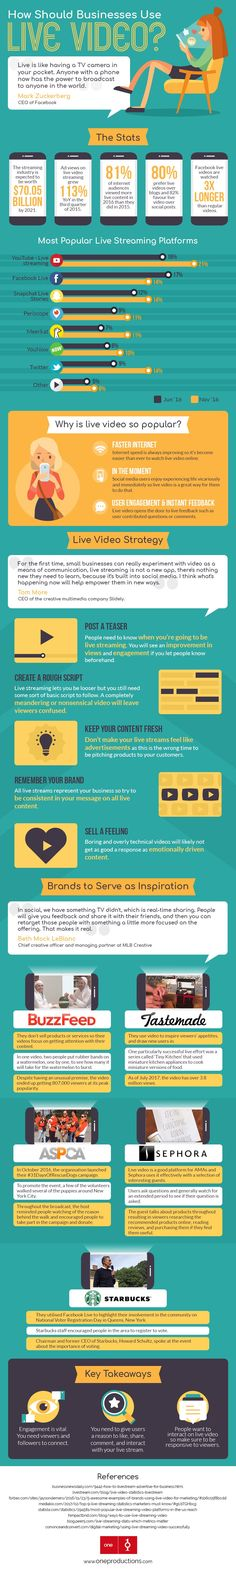 The Small Business Benefits of Using Live Video (INFOGRAPHIC) How should businesses use live video to promote their products and services? Here's a primer in infographic form on how to start. Small Business Trends, Business Tips, Online Business, Online Marketing, Social Media Marketing, Marketing News, Marketing Strategies, Content Marketing, Affiliate Marketing